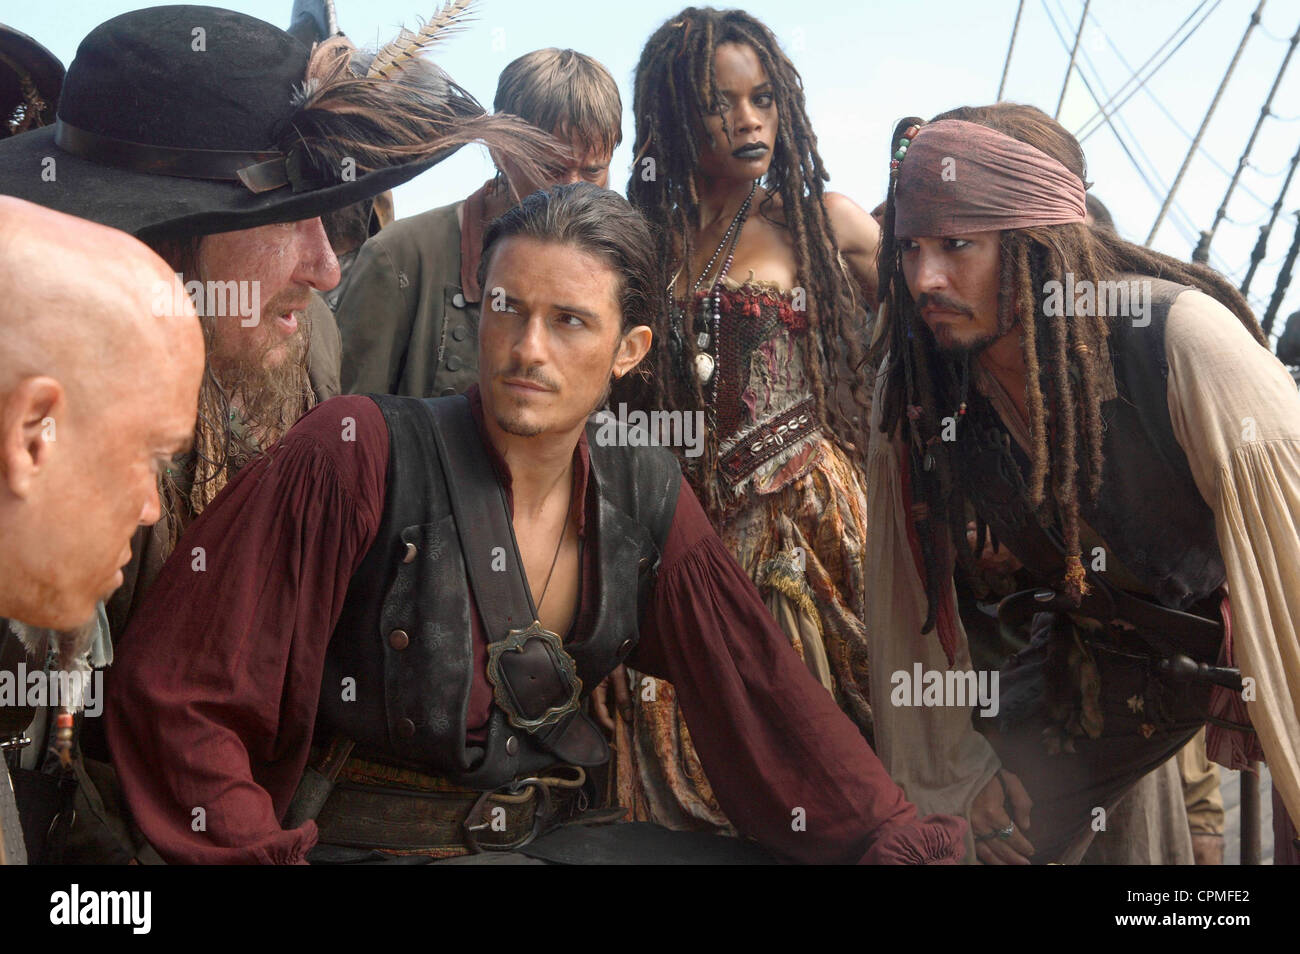 Pirates of the Caribbean: At World's End - Stock Image